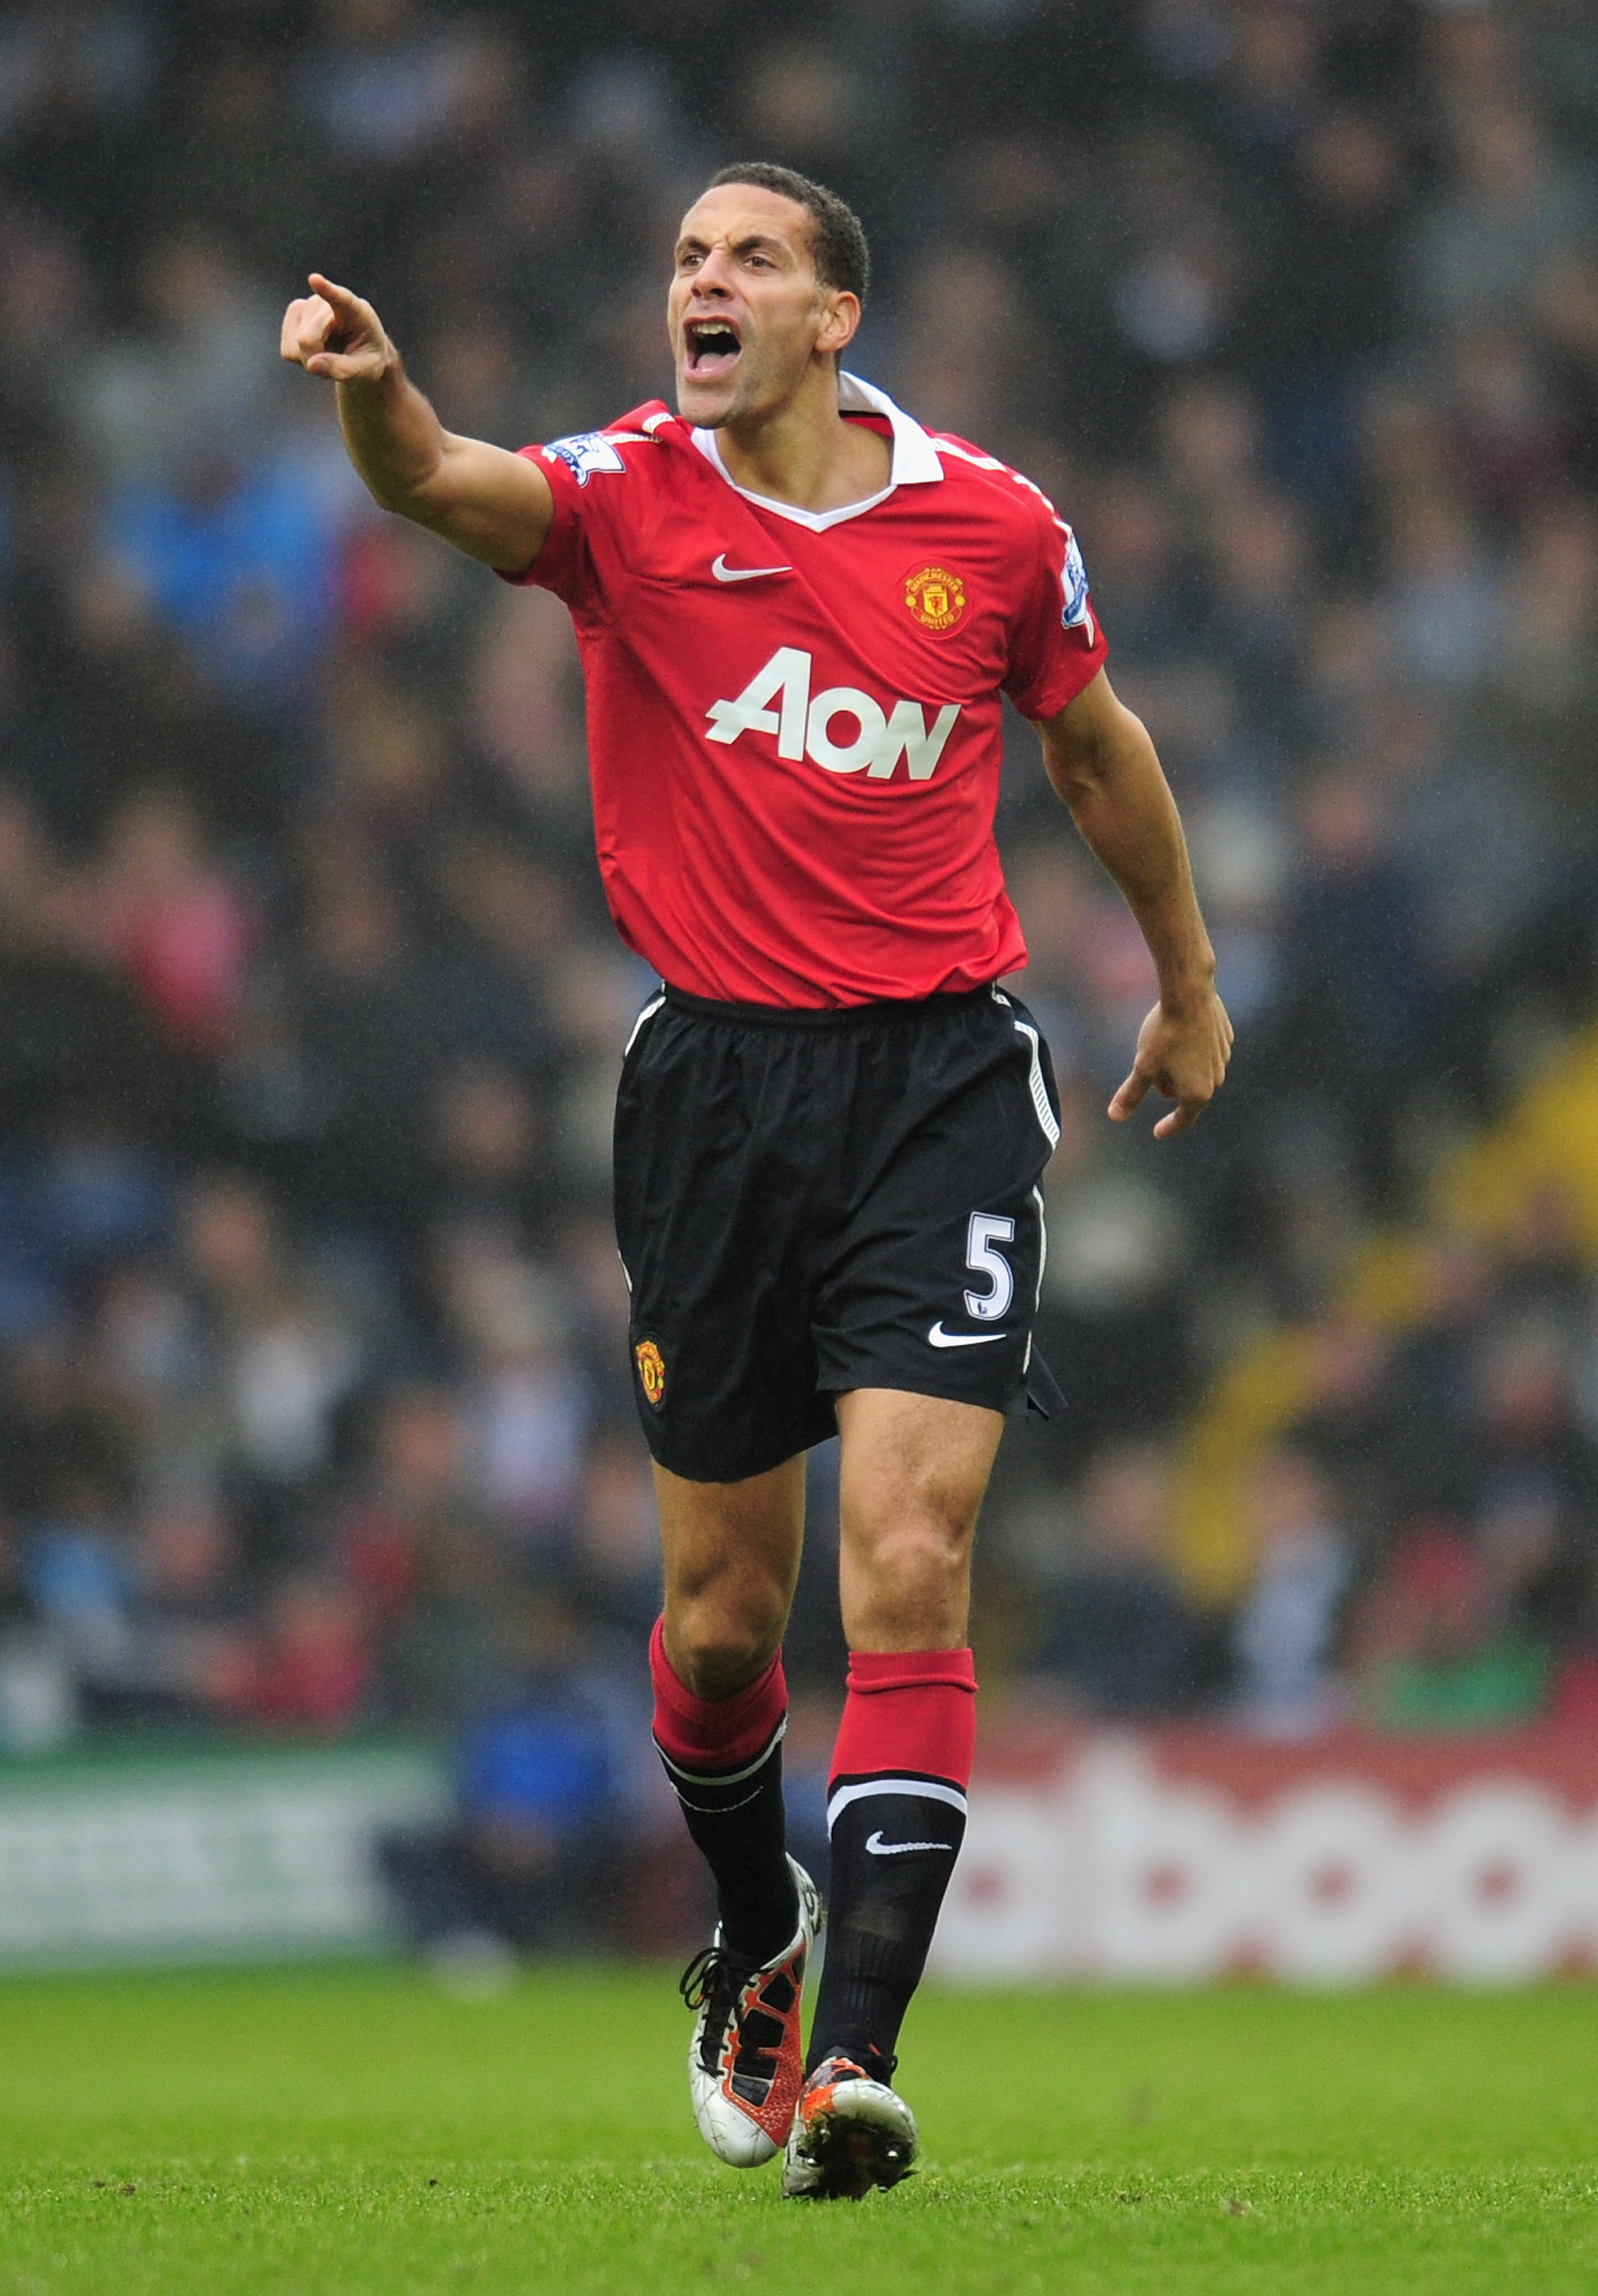 WEST BROMWICH, ENGLAND - JANUARY 01:  Rio Ferdinand of Manchester United shouts instructions during the Barclays Premier League match between West Bromich Albion and Manchester United at The Hawthorns on January 1, 2011 in West Bromwich, England.  (Photo